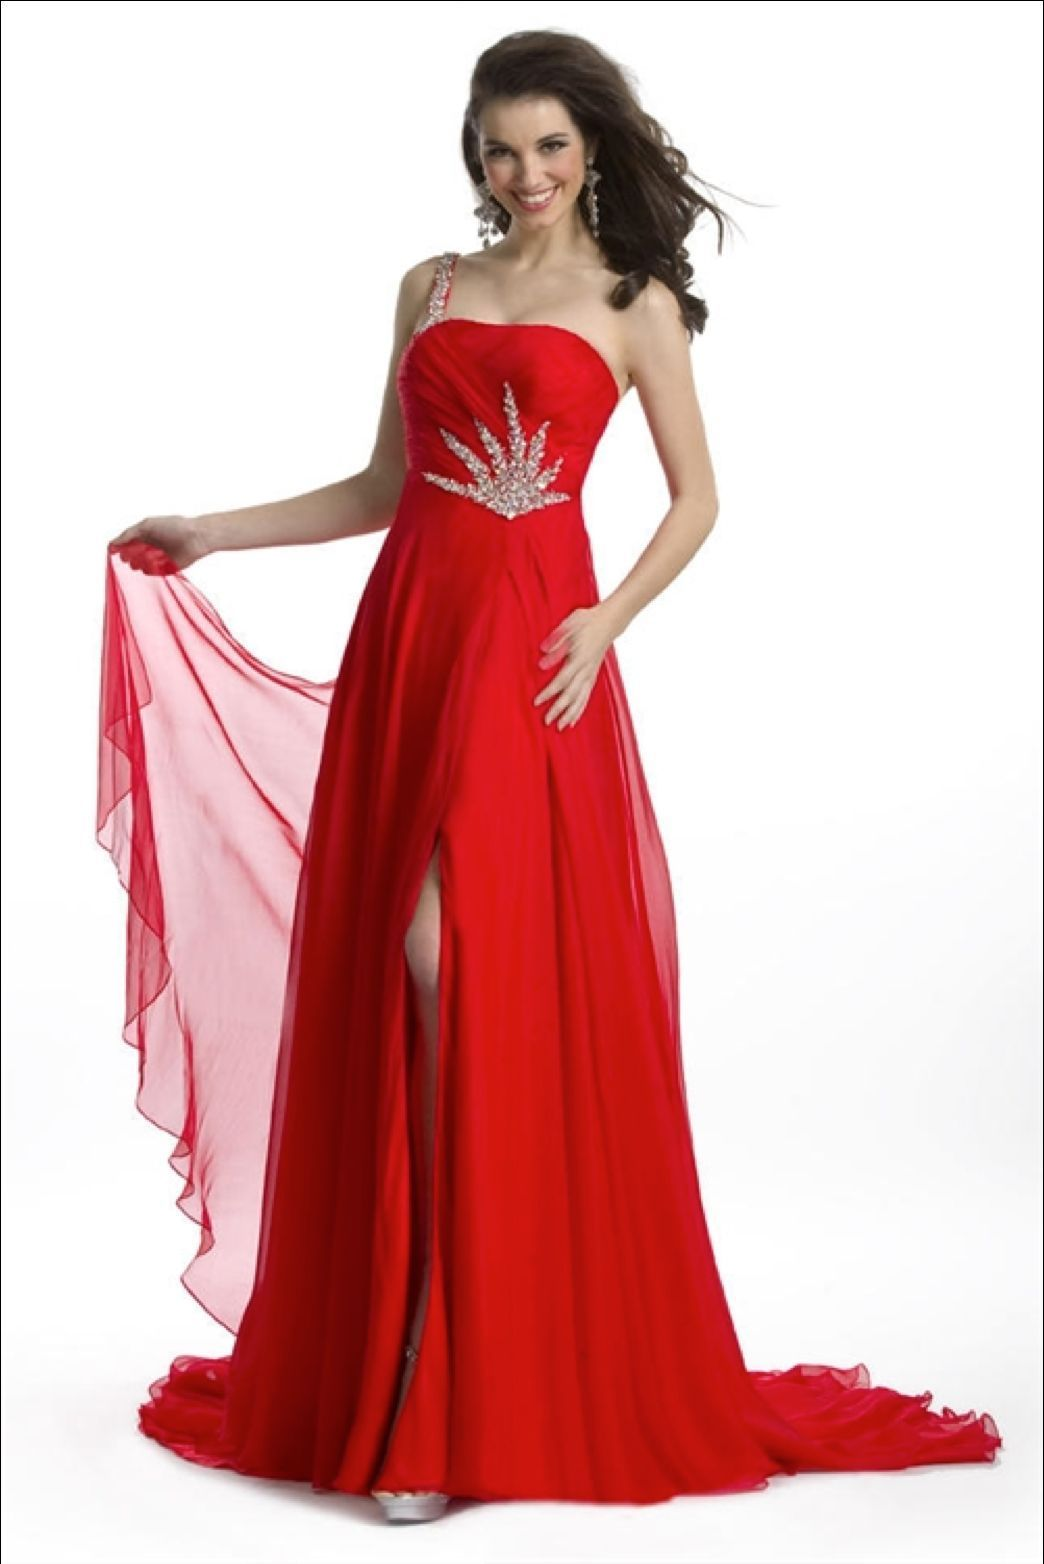 Stunning Sexy Silk Beaded One Strap Pageant Prom Gown, Prima Donna 5581 - Red -